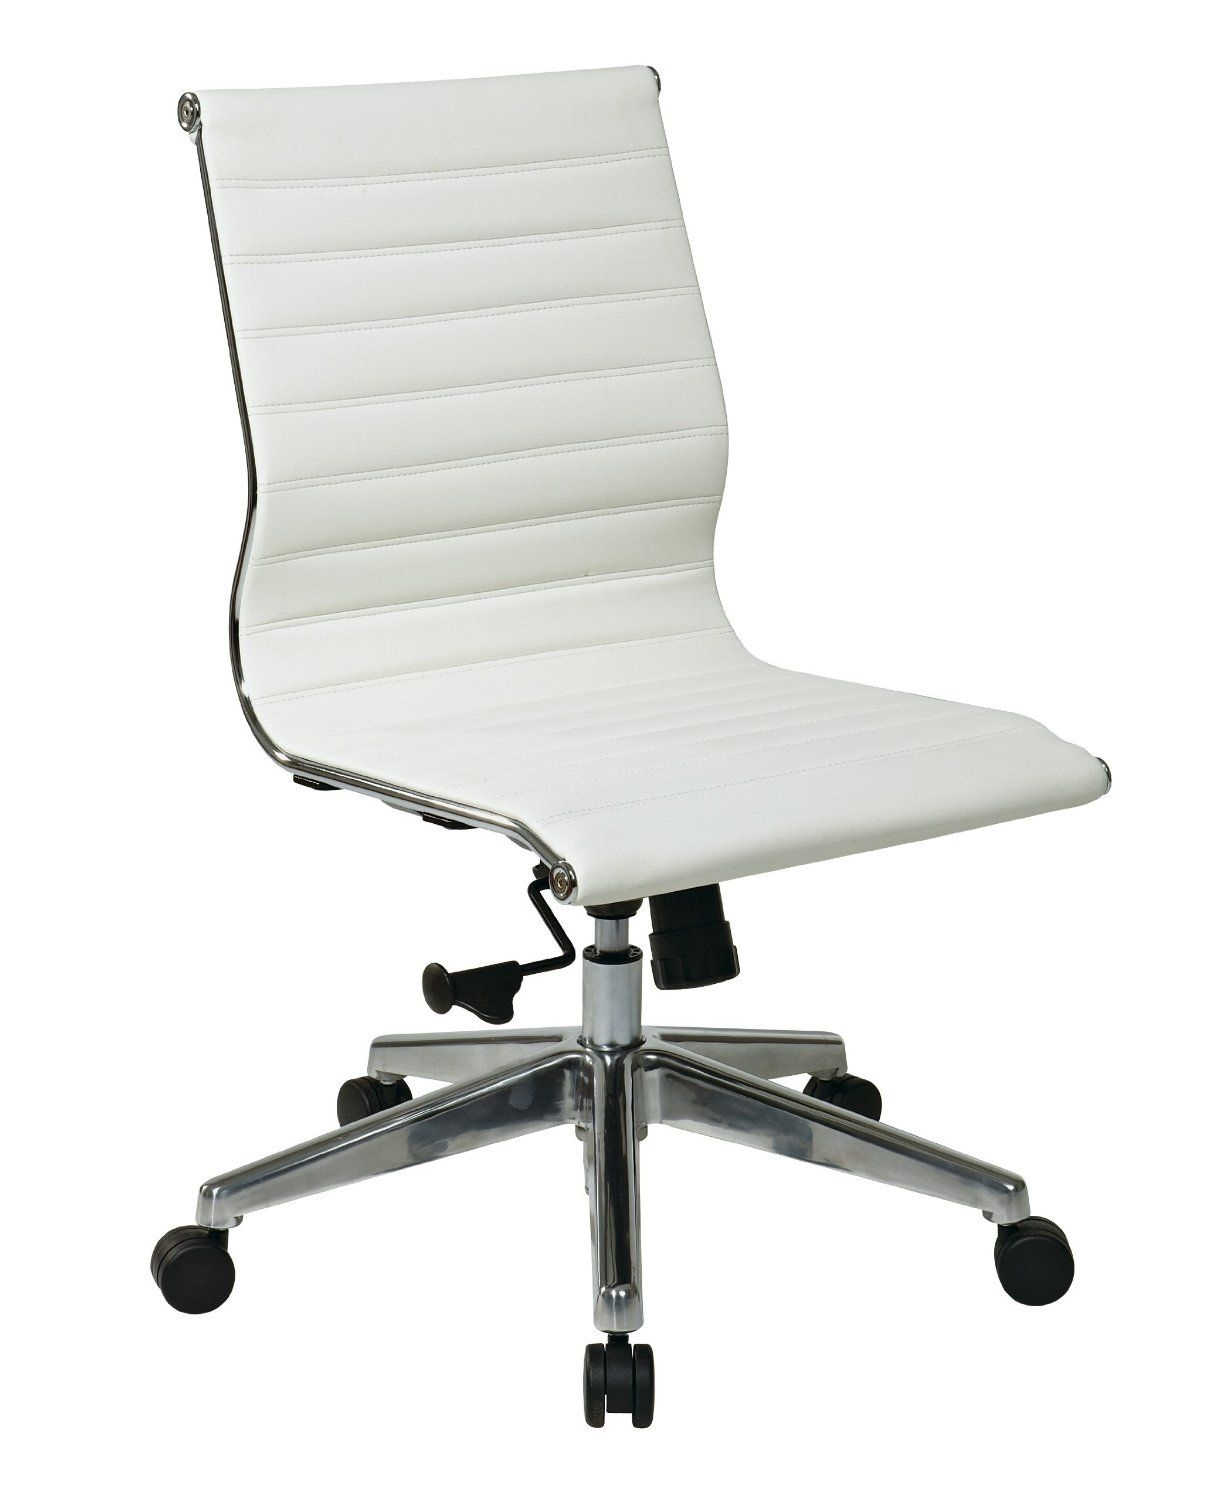 Delicieux Mid Back Eco Leather Office Chair